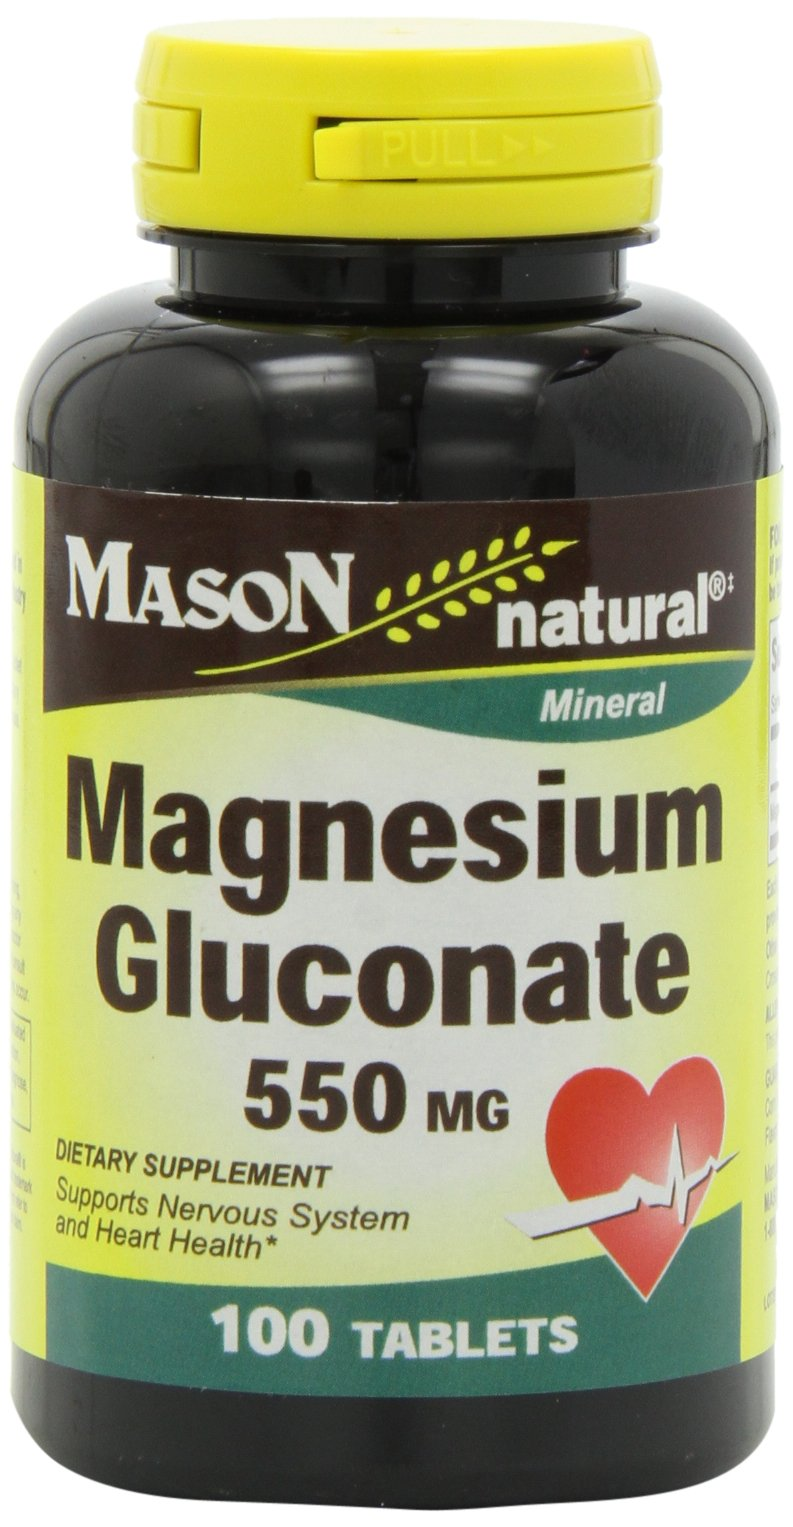 Mason Natural, Magnesium Gluconate 550 Mg Tablets, 100-Count Bottles (Pack of